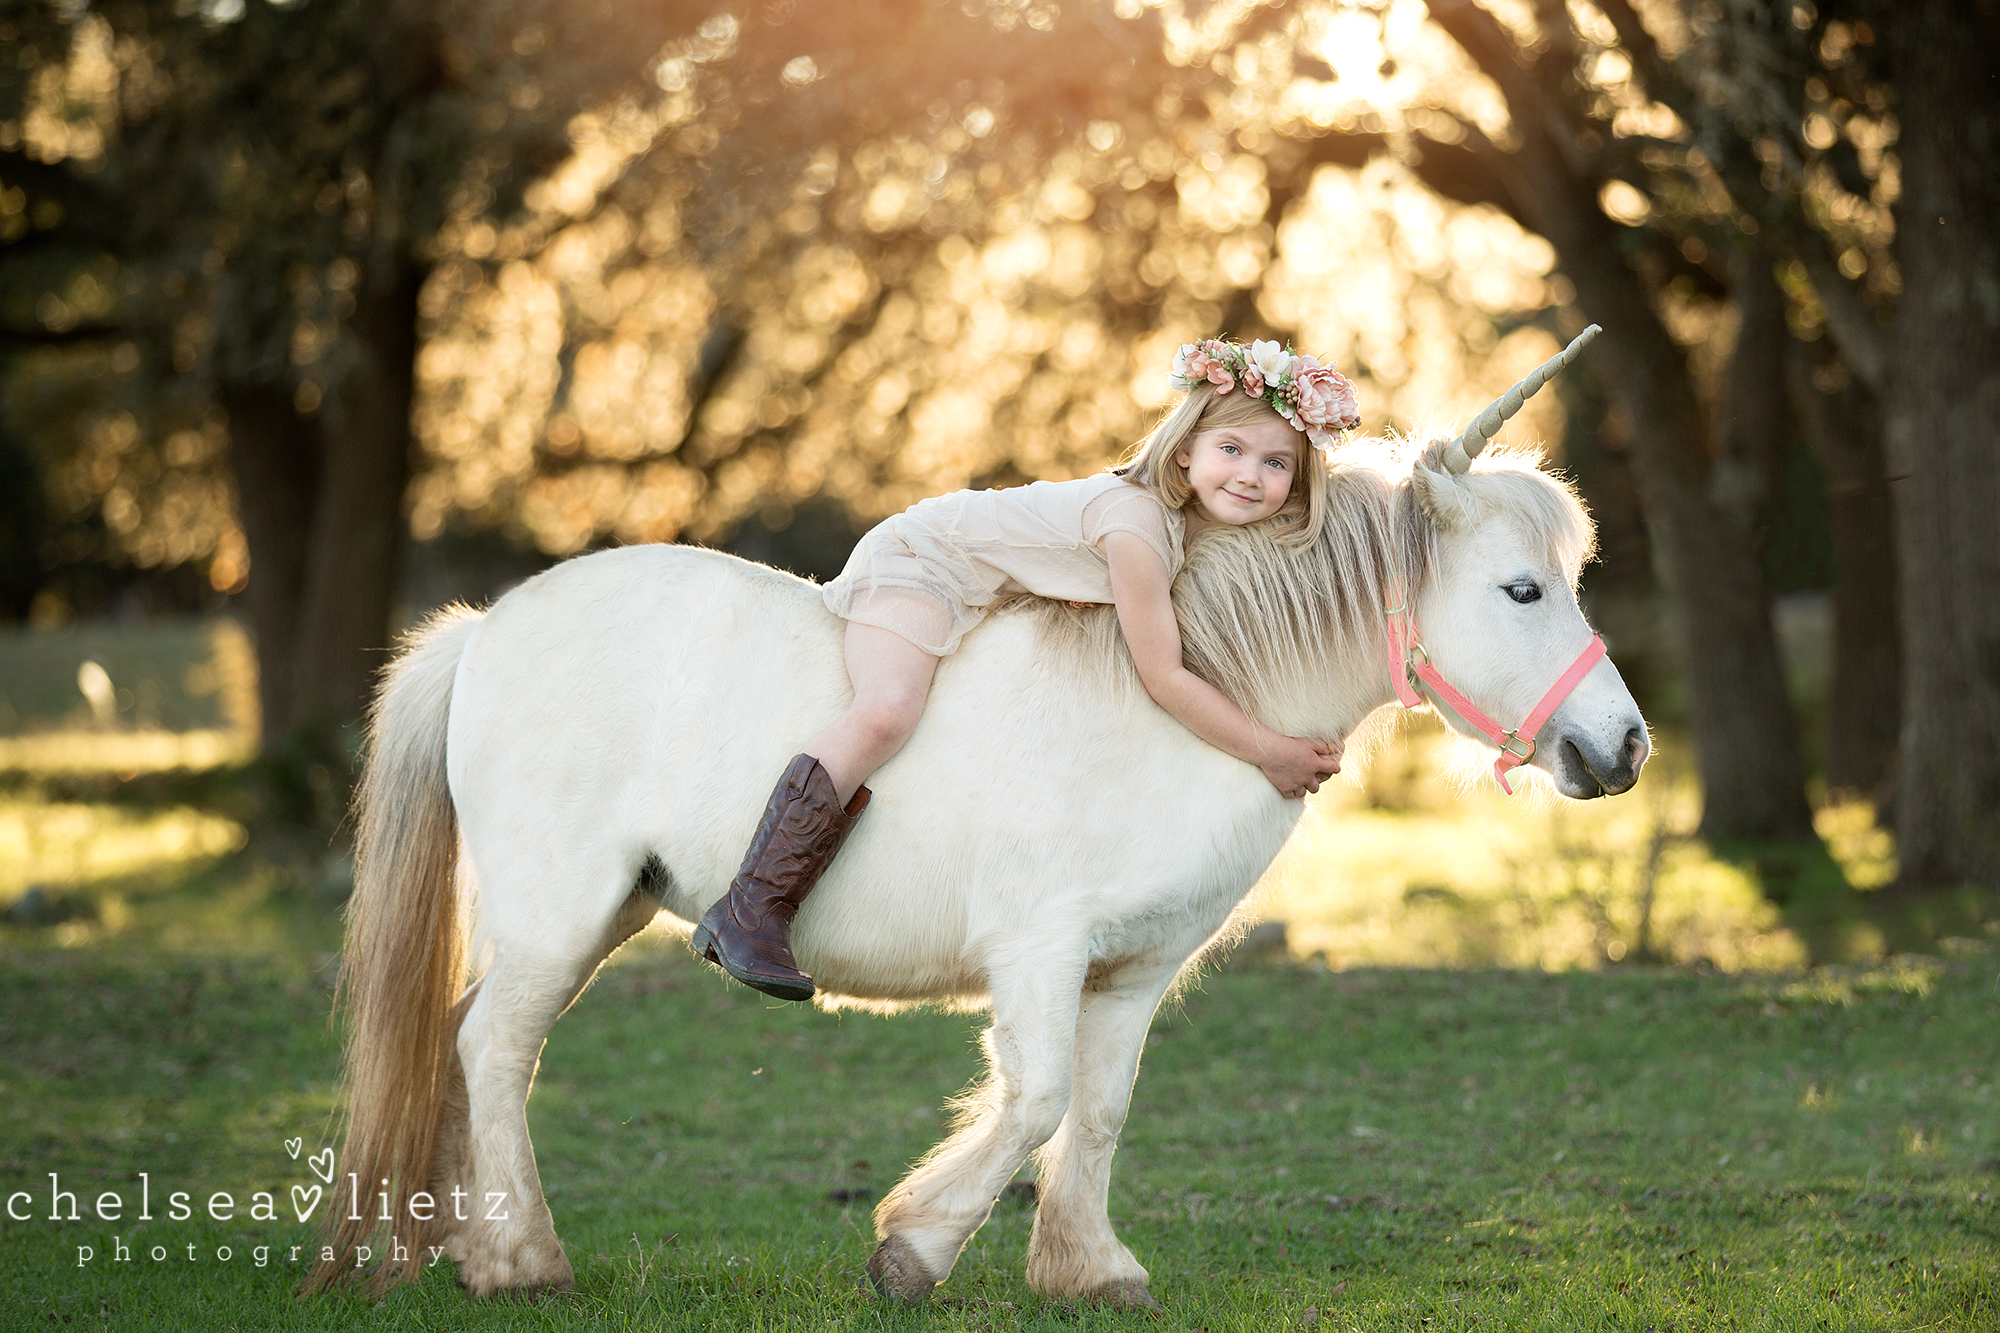 Unicorn And Pony Photos For Children Chelsea Lietz Photography San Antonio San Antonio Newborn Photographer Chelsea Lietz Photography Babies Children Maternity